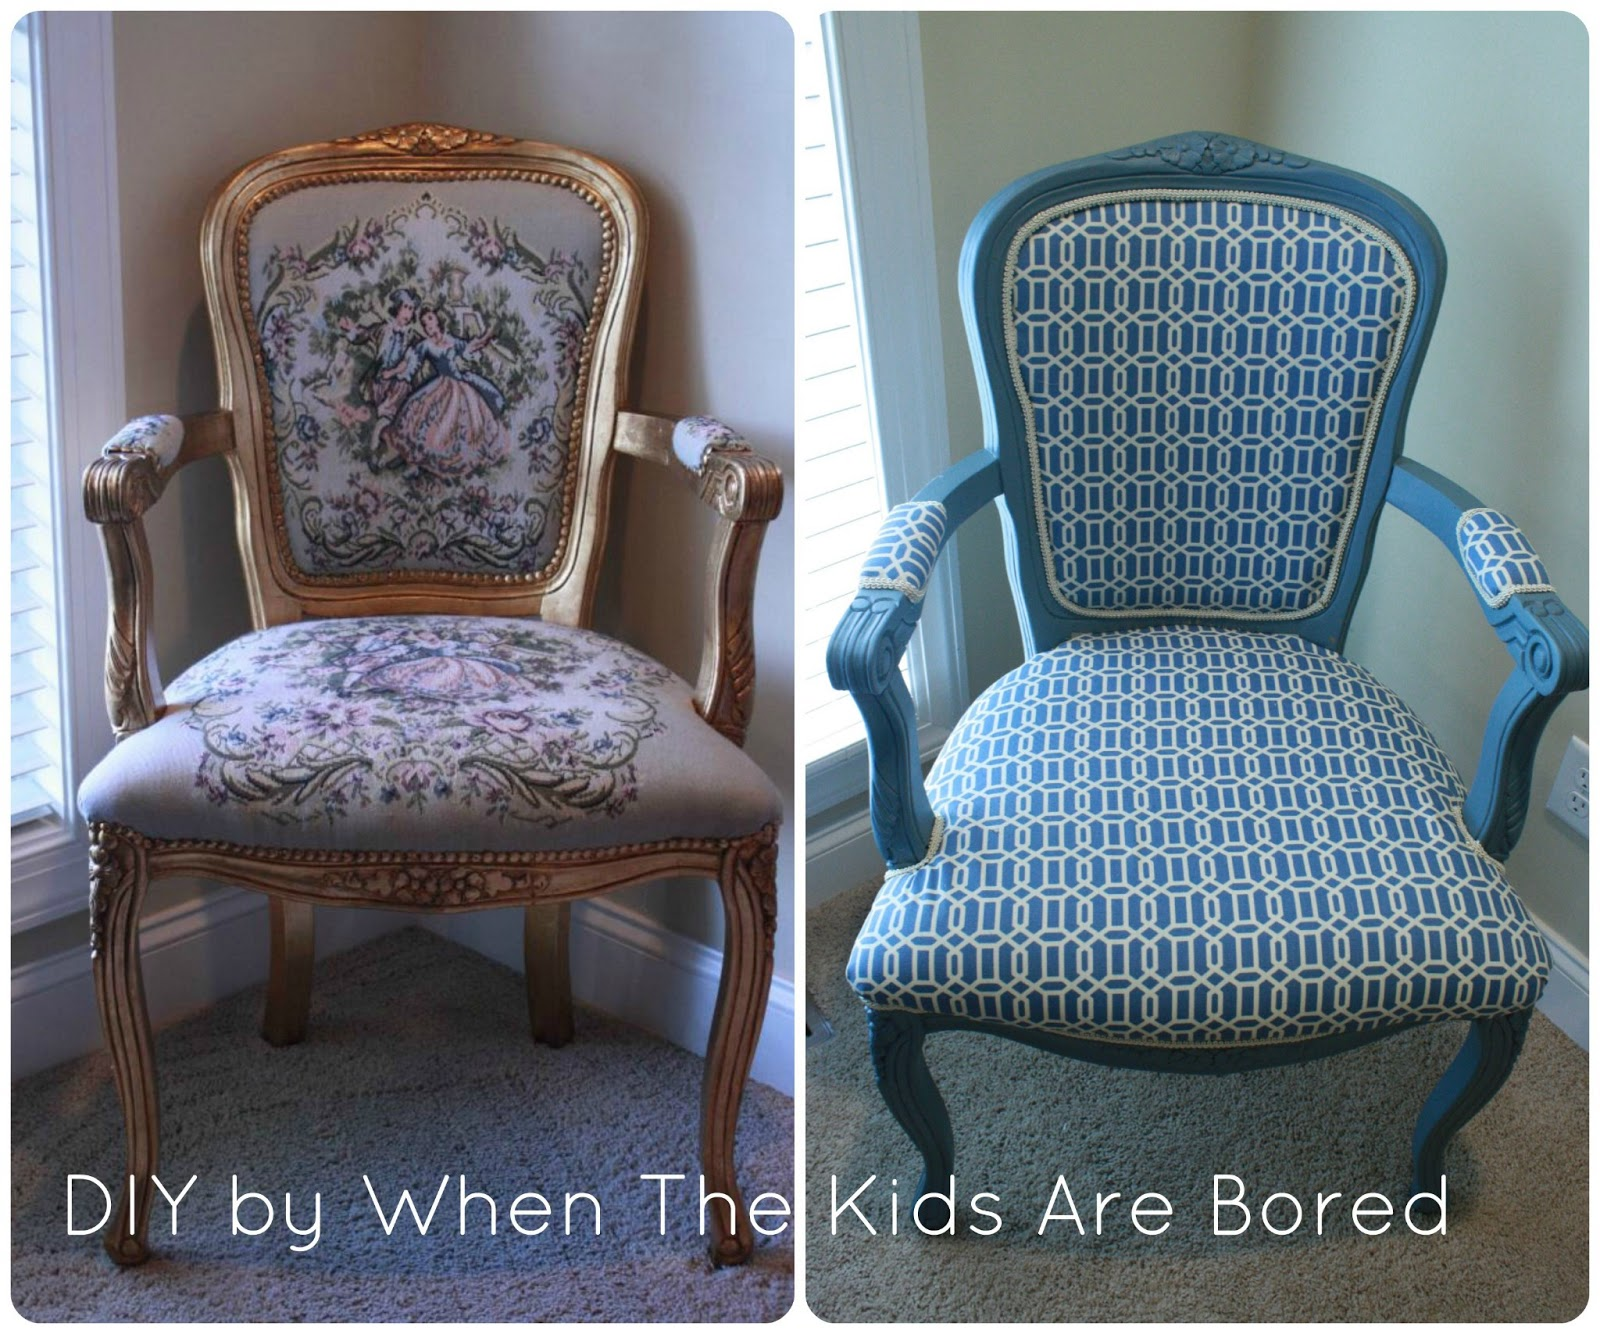 Queen Anne Style Chair Small Table And Chairs For Kitchen When The Kids Are Bored Re Do